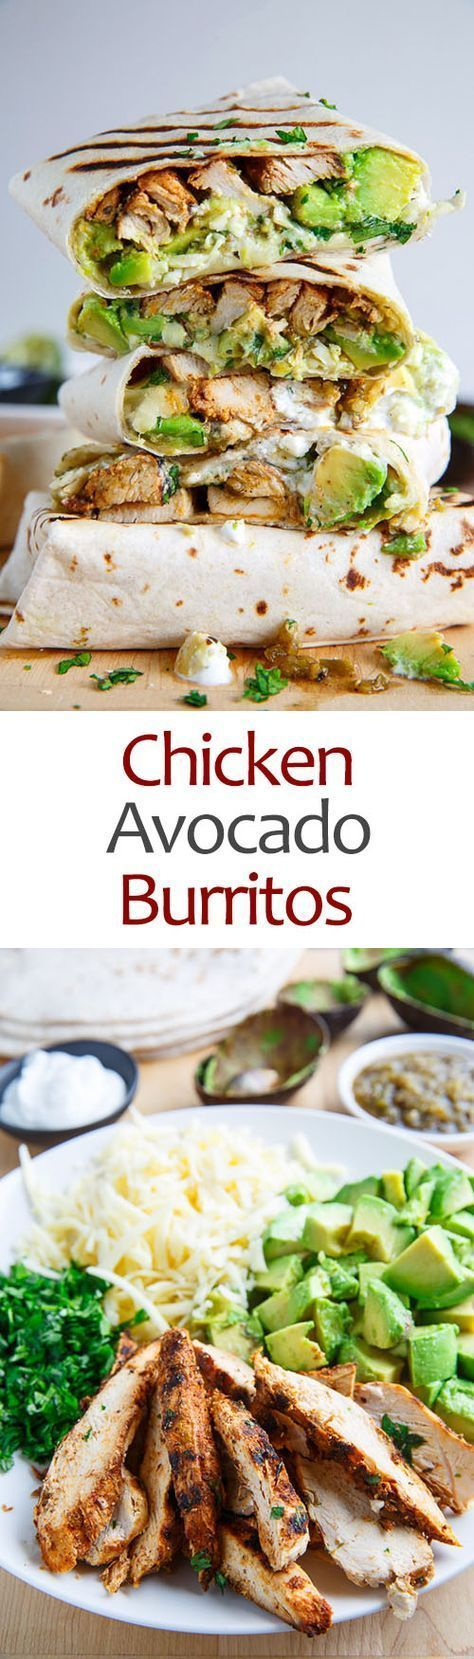 Chicken and Avocado Burritos - use homemade tortillas, Greek yogurt, and homemade seasoning mixes to keep this low-sodium and to enhance the fresh flavors.